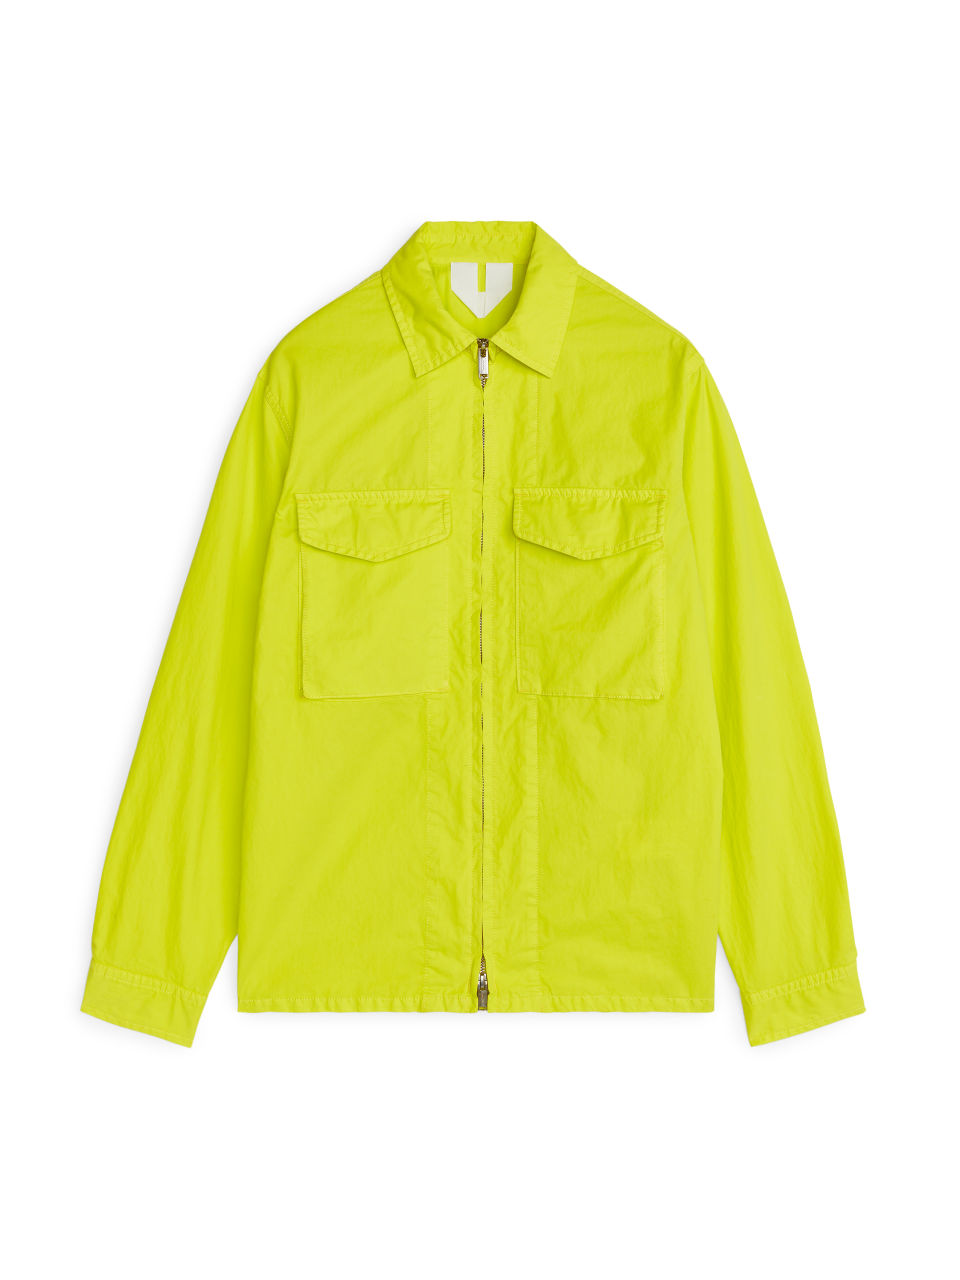 Front image of Arket high-density overshirt in yellow